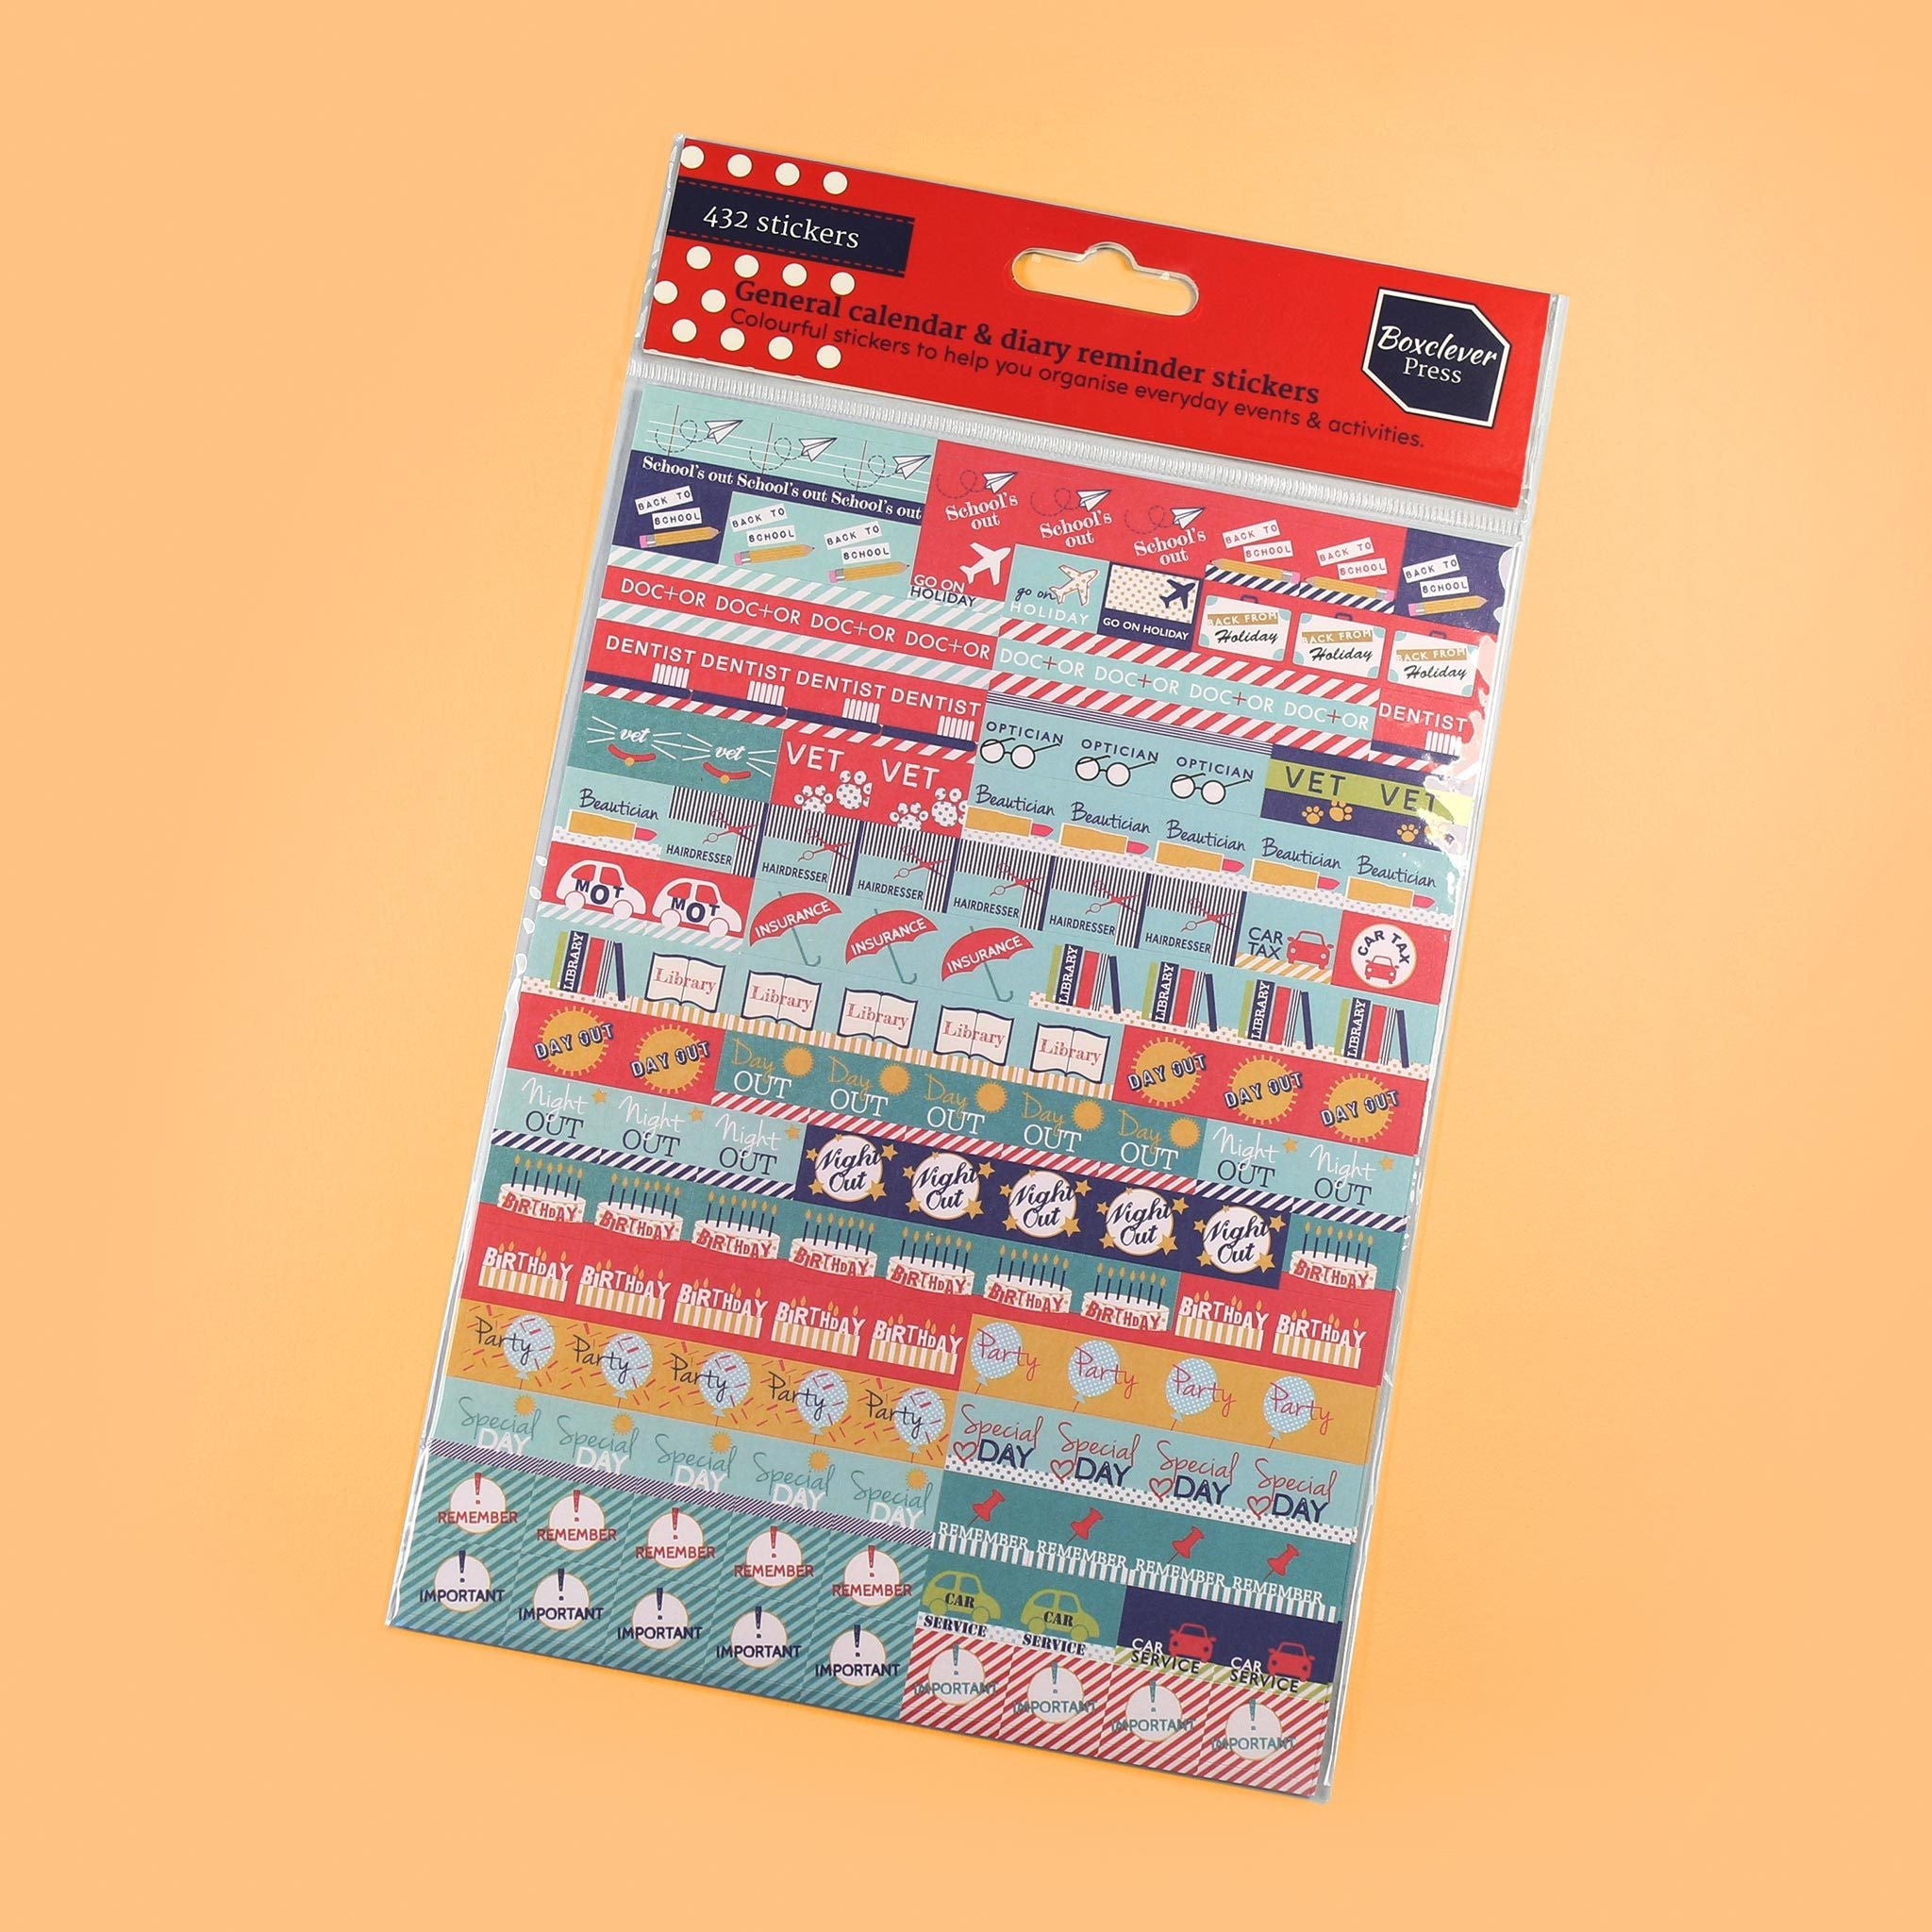 An image of General Stickers I Diary, planner and calendar I Boxclever Press